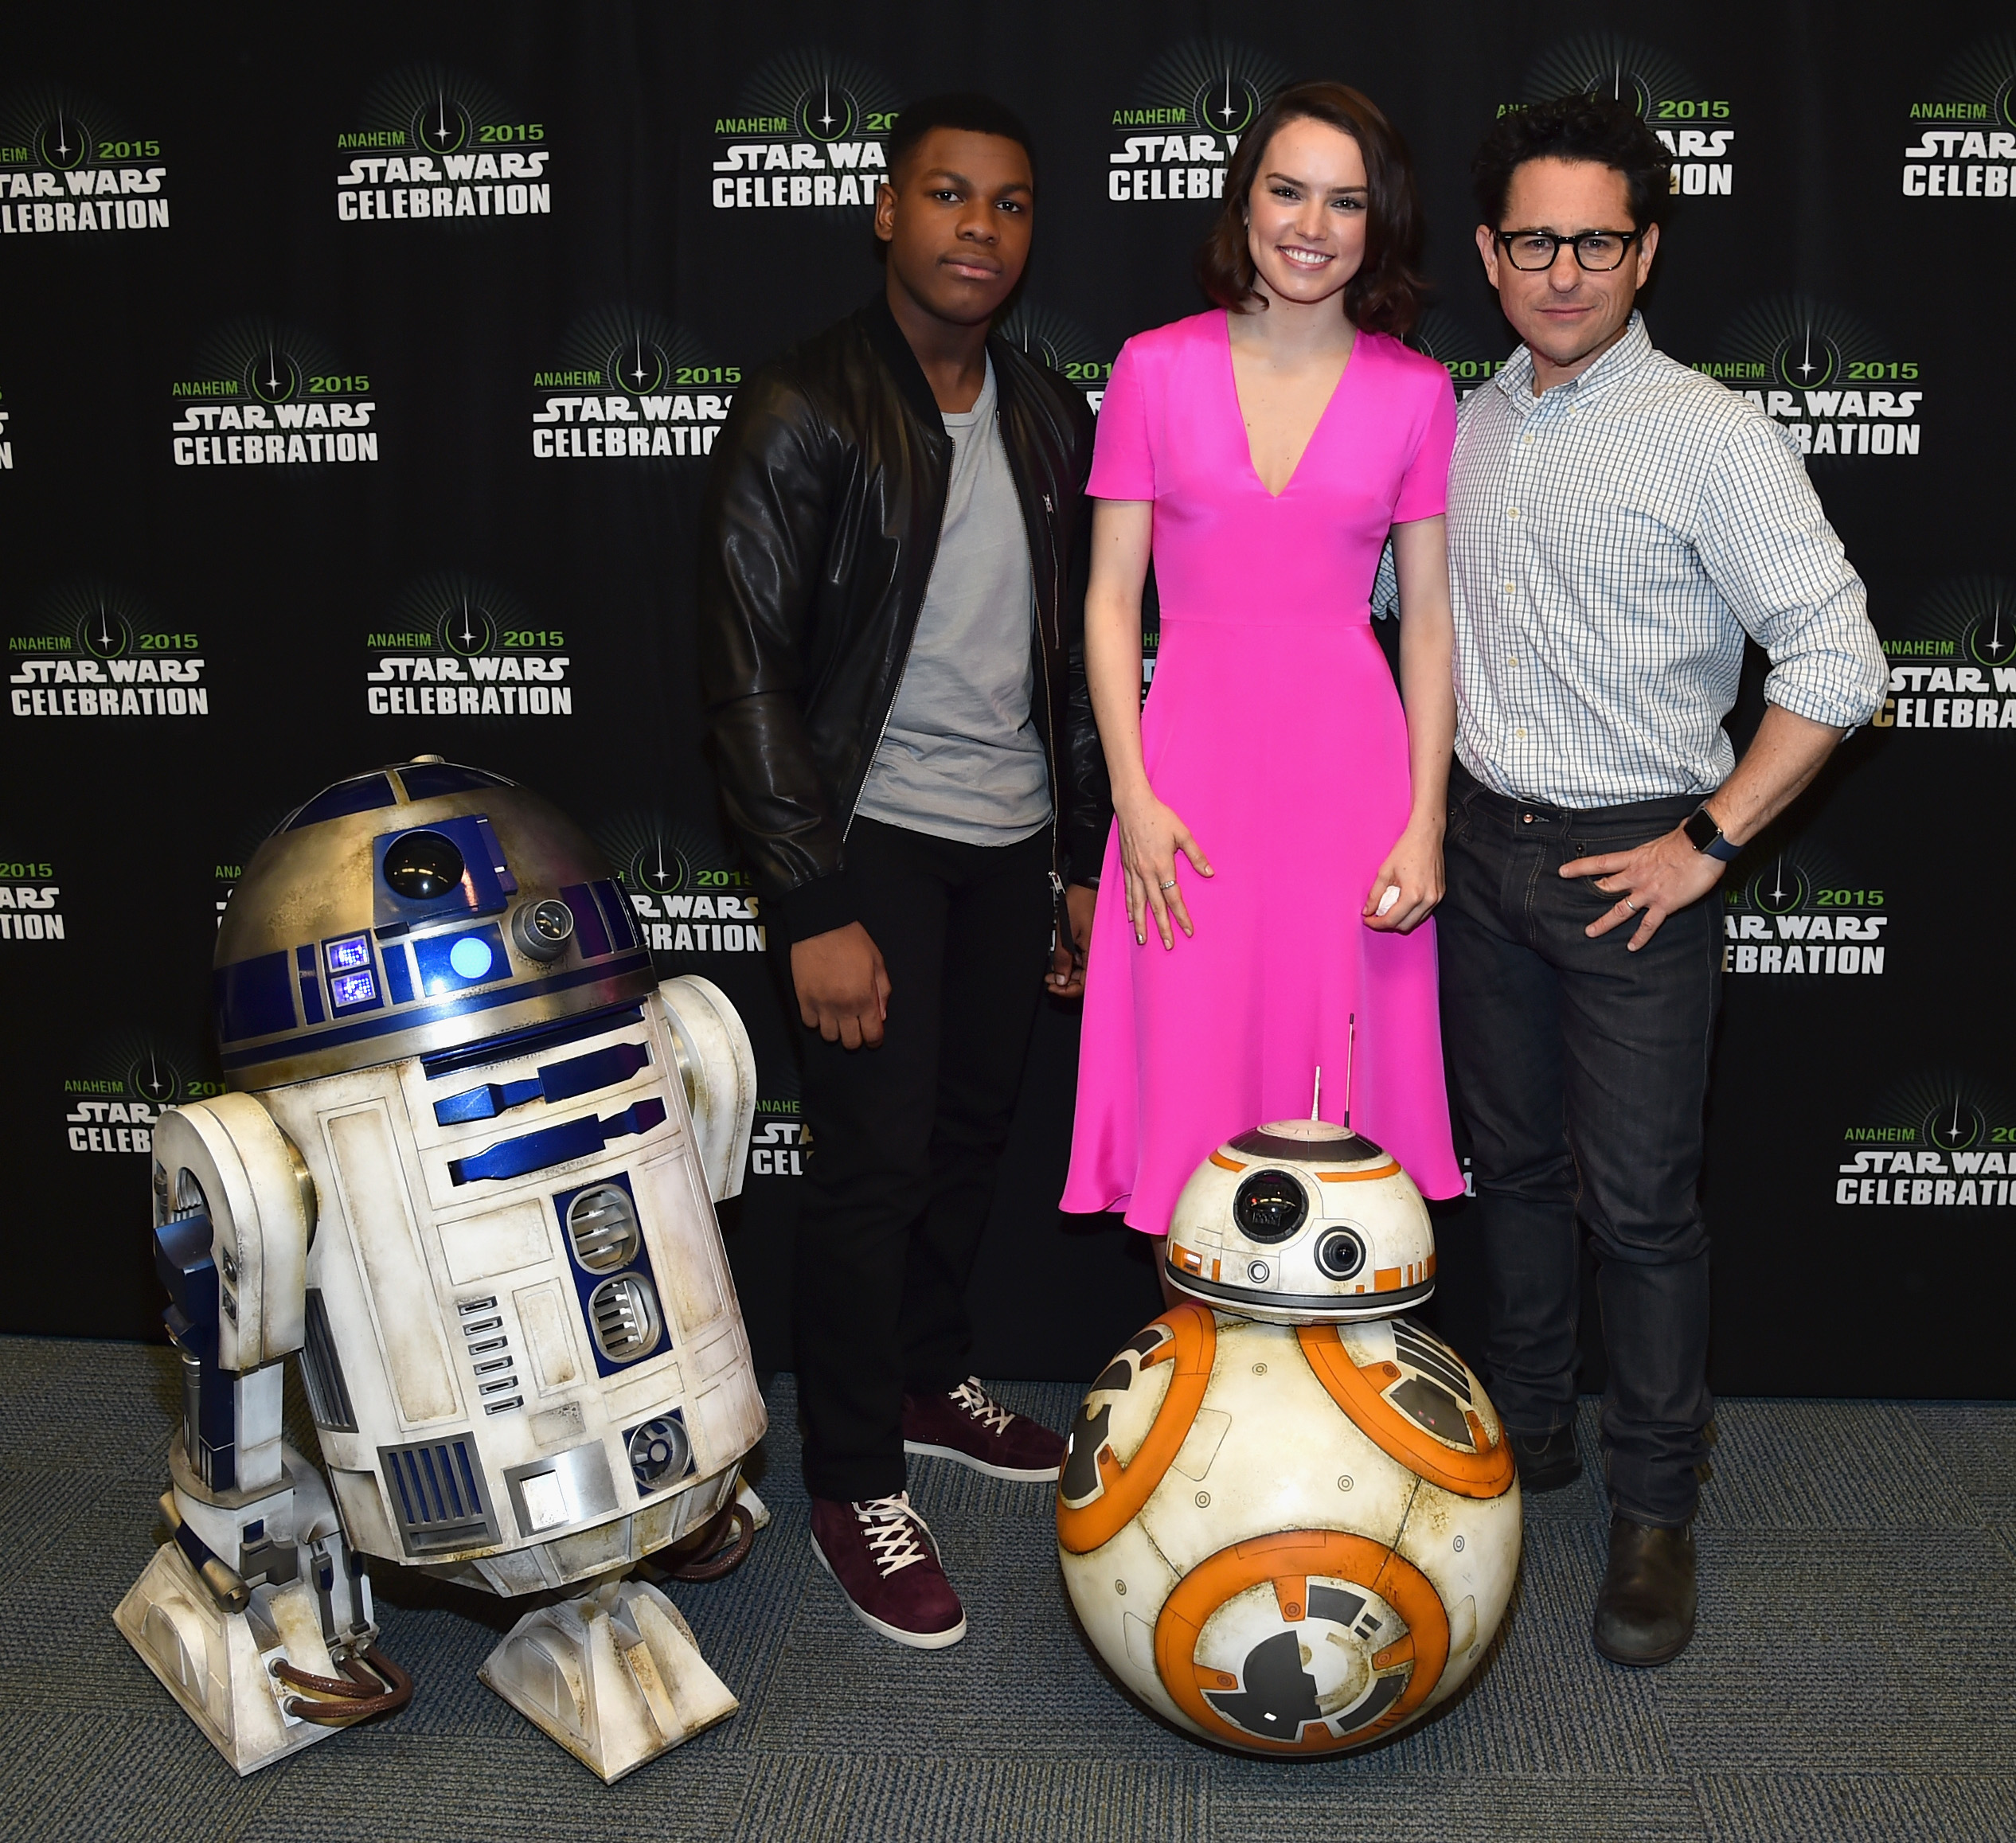 ANAHEIM, CA - APRIL 16:  (L-R) Actors John Boyega and Daisy Ridley and director J.J. Abrams attend Star Wars Celebration 2015 on April 16, 2015 in Anaheim, California.  (Photo by Alberto E. Rodriguez/Getty Images for Disney)